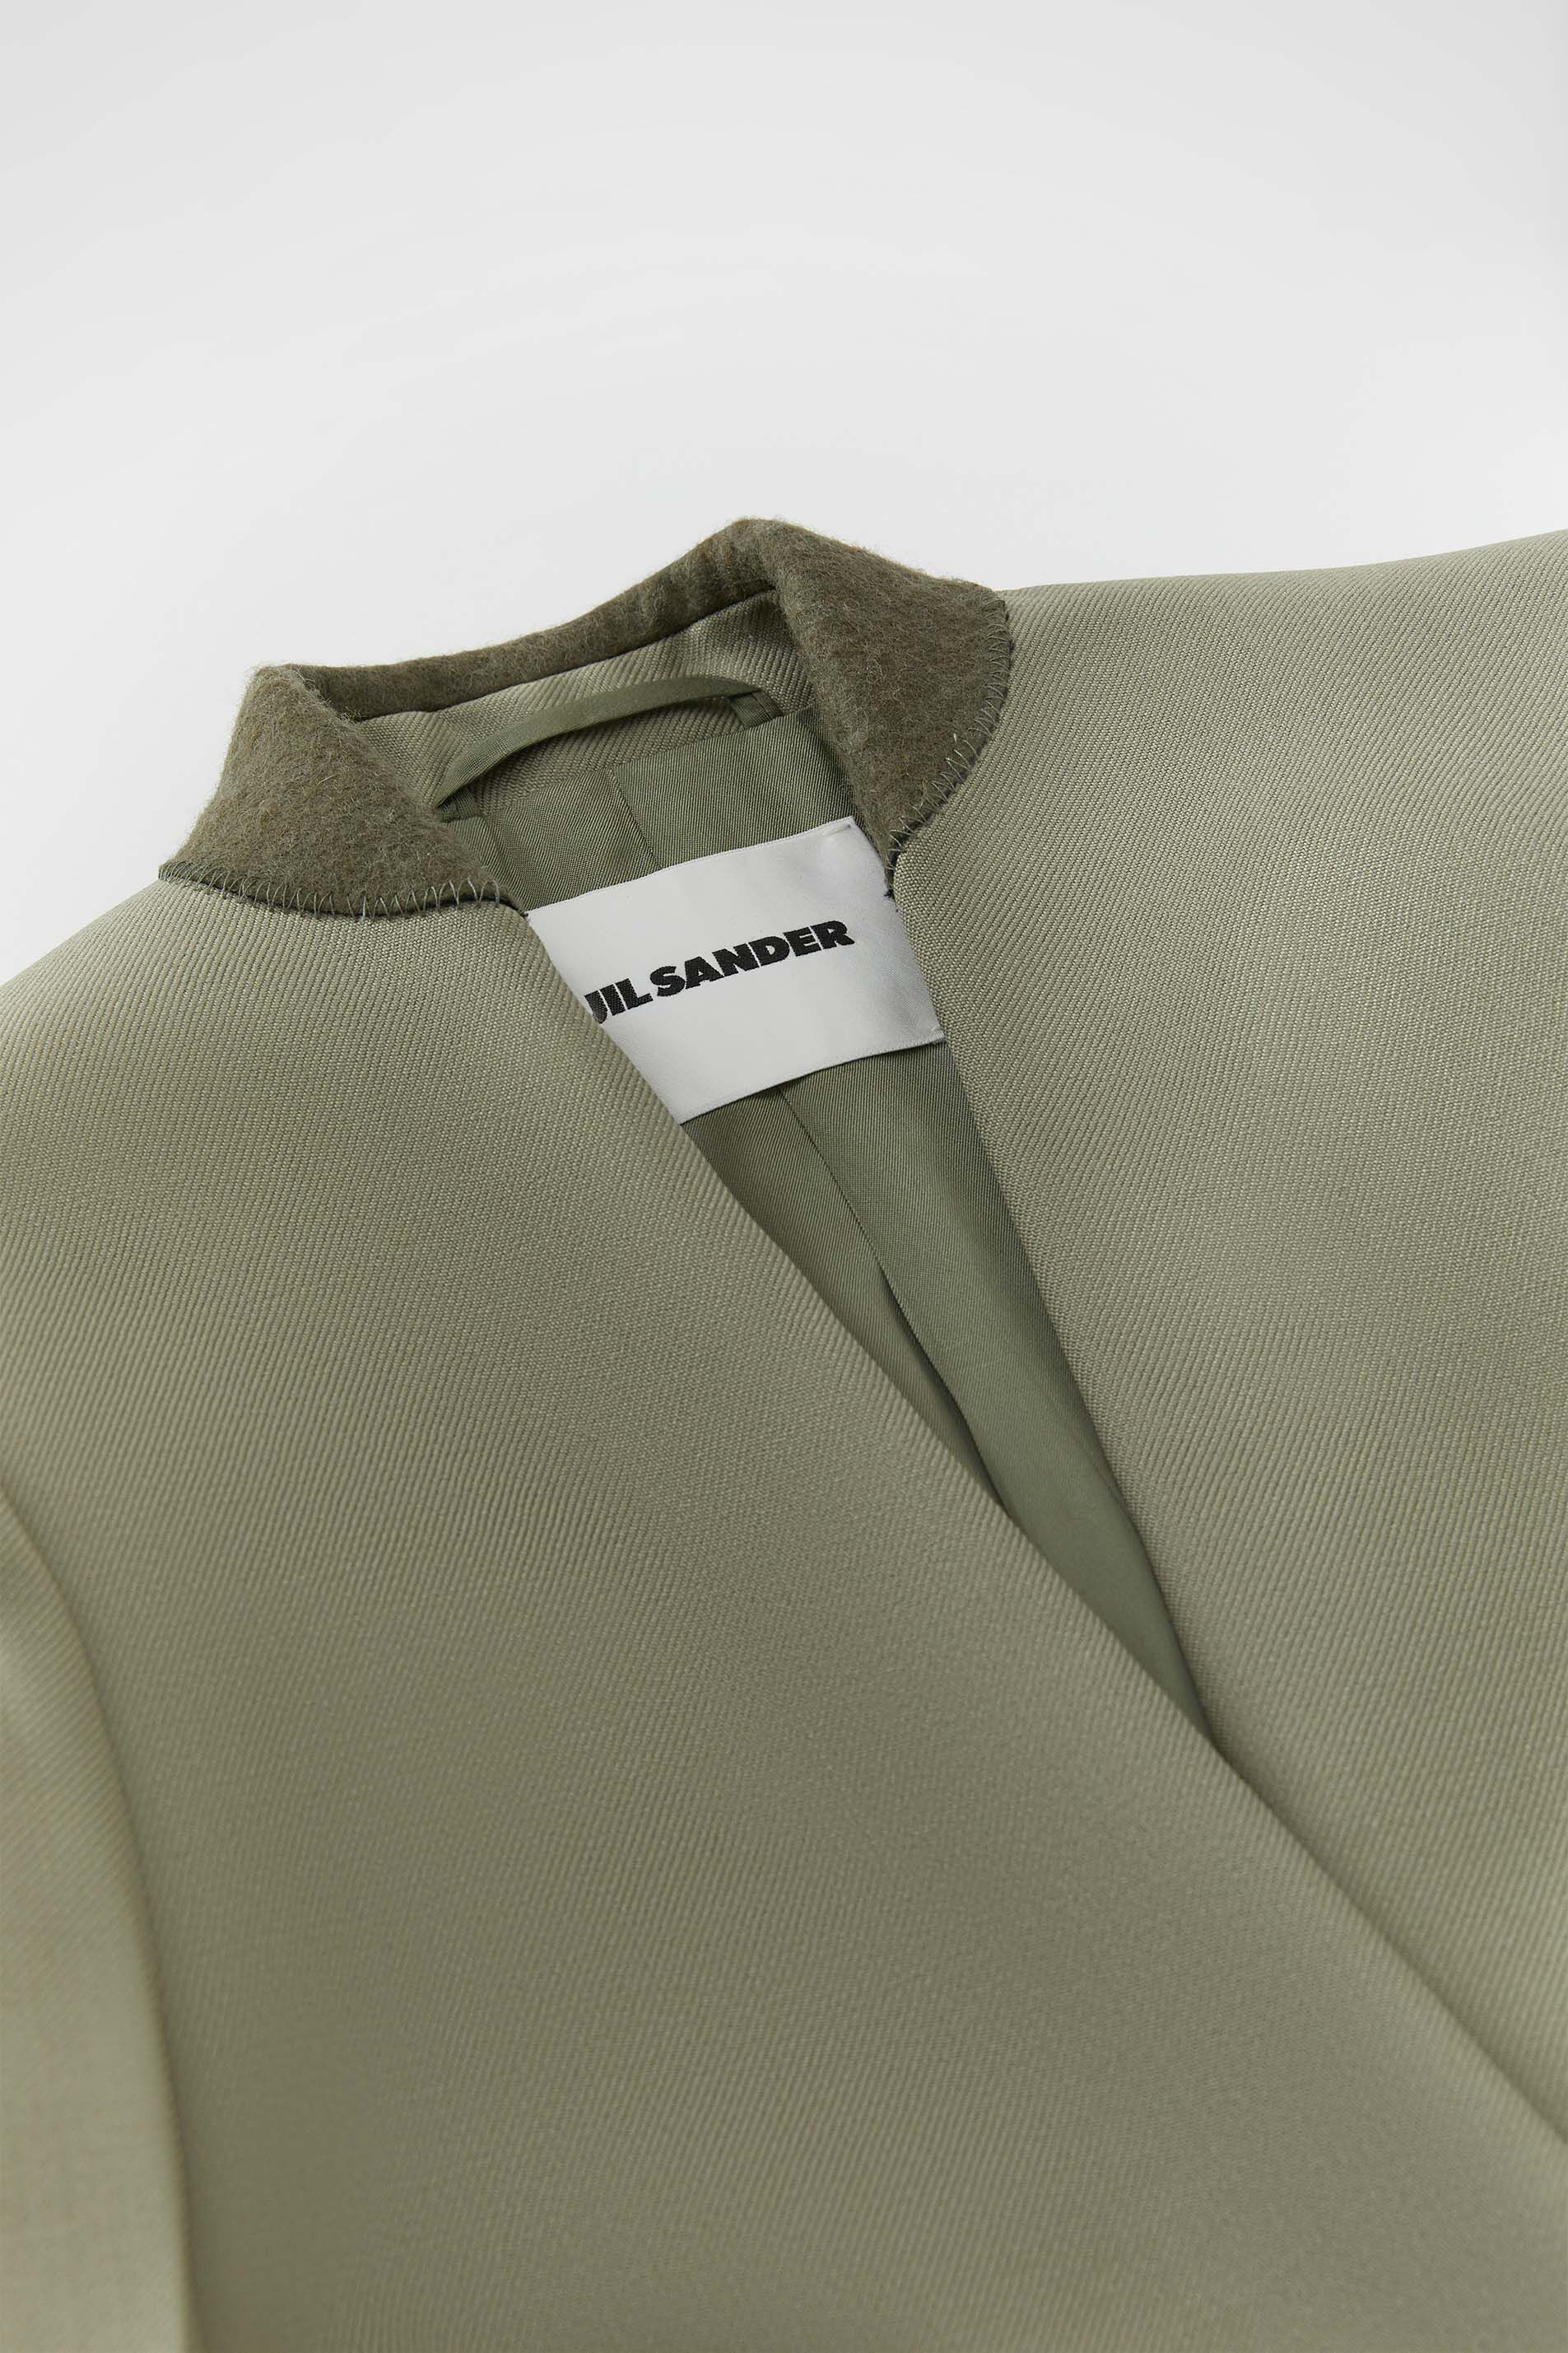 Tailored Jacket, green, large